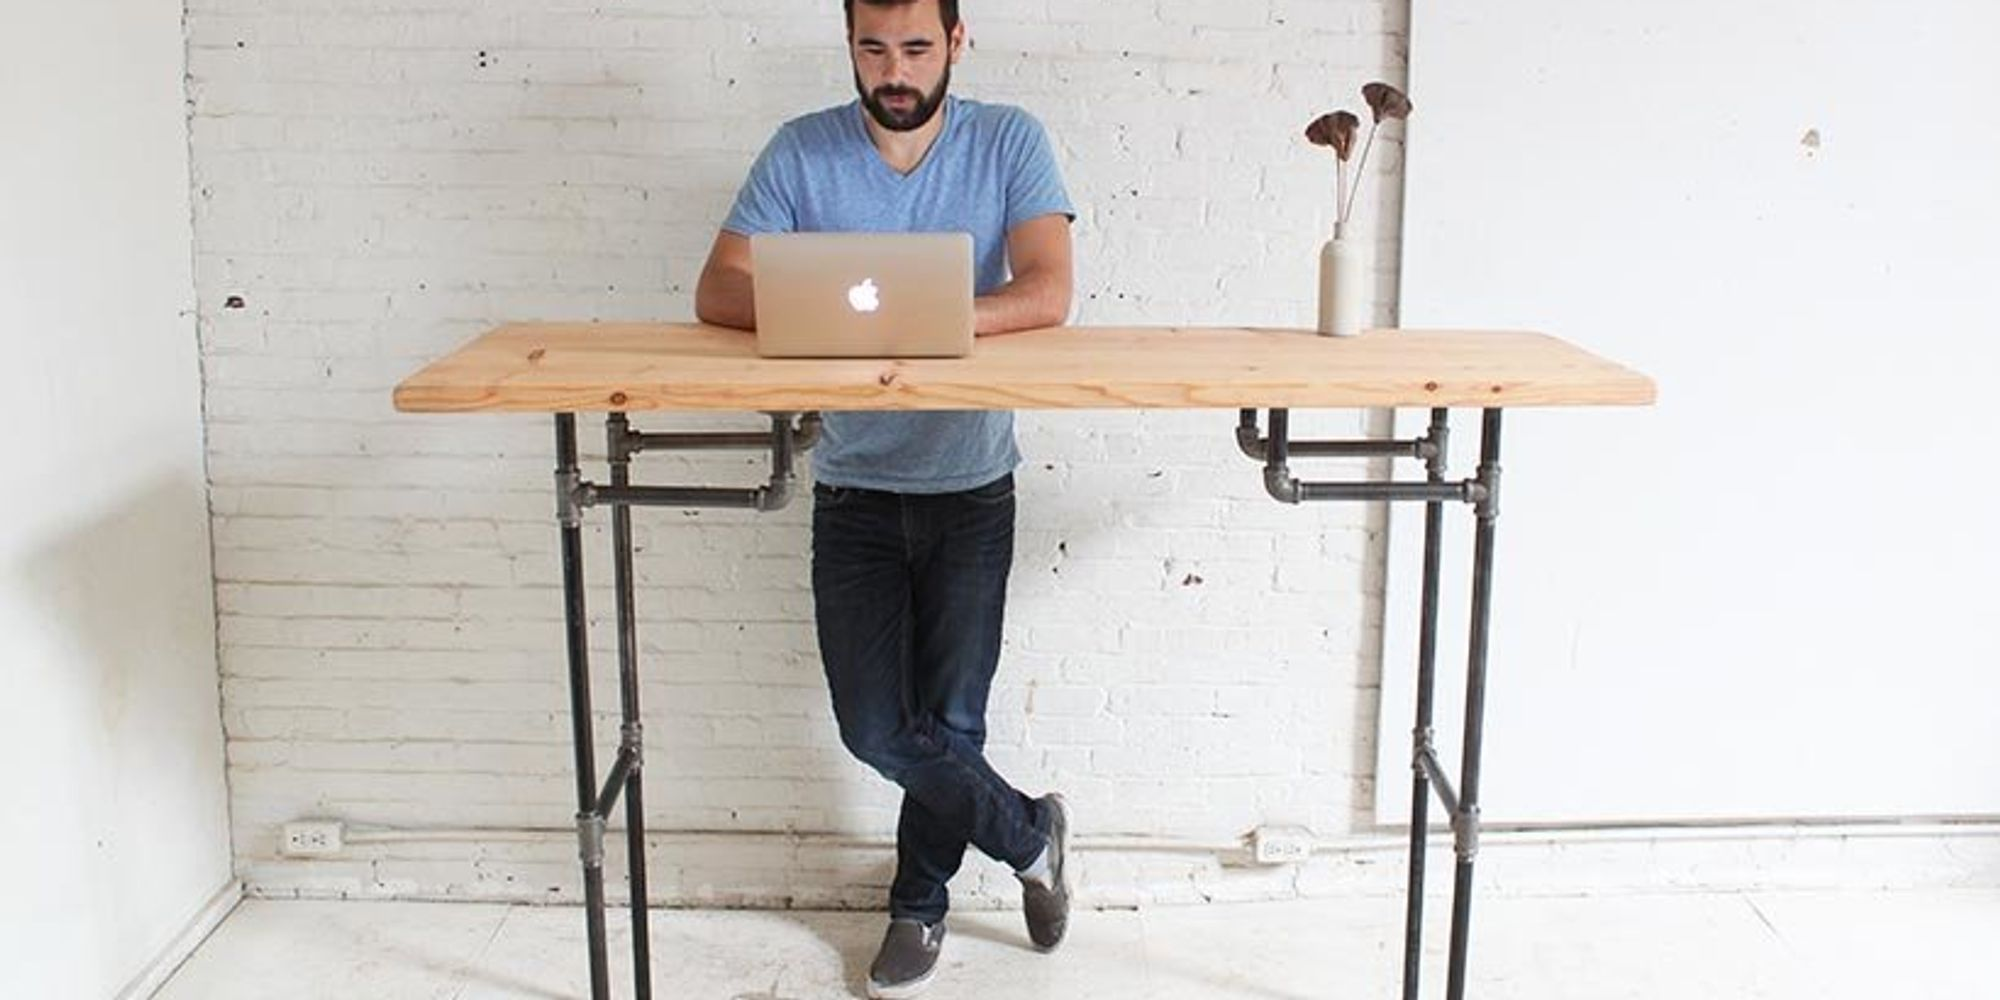 How To Make Your Own Standing Desk | The Huffington Post